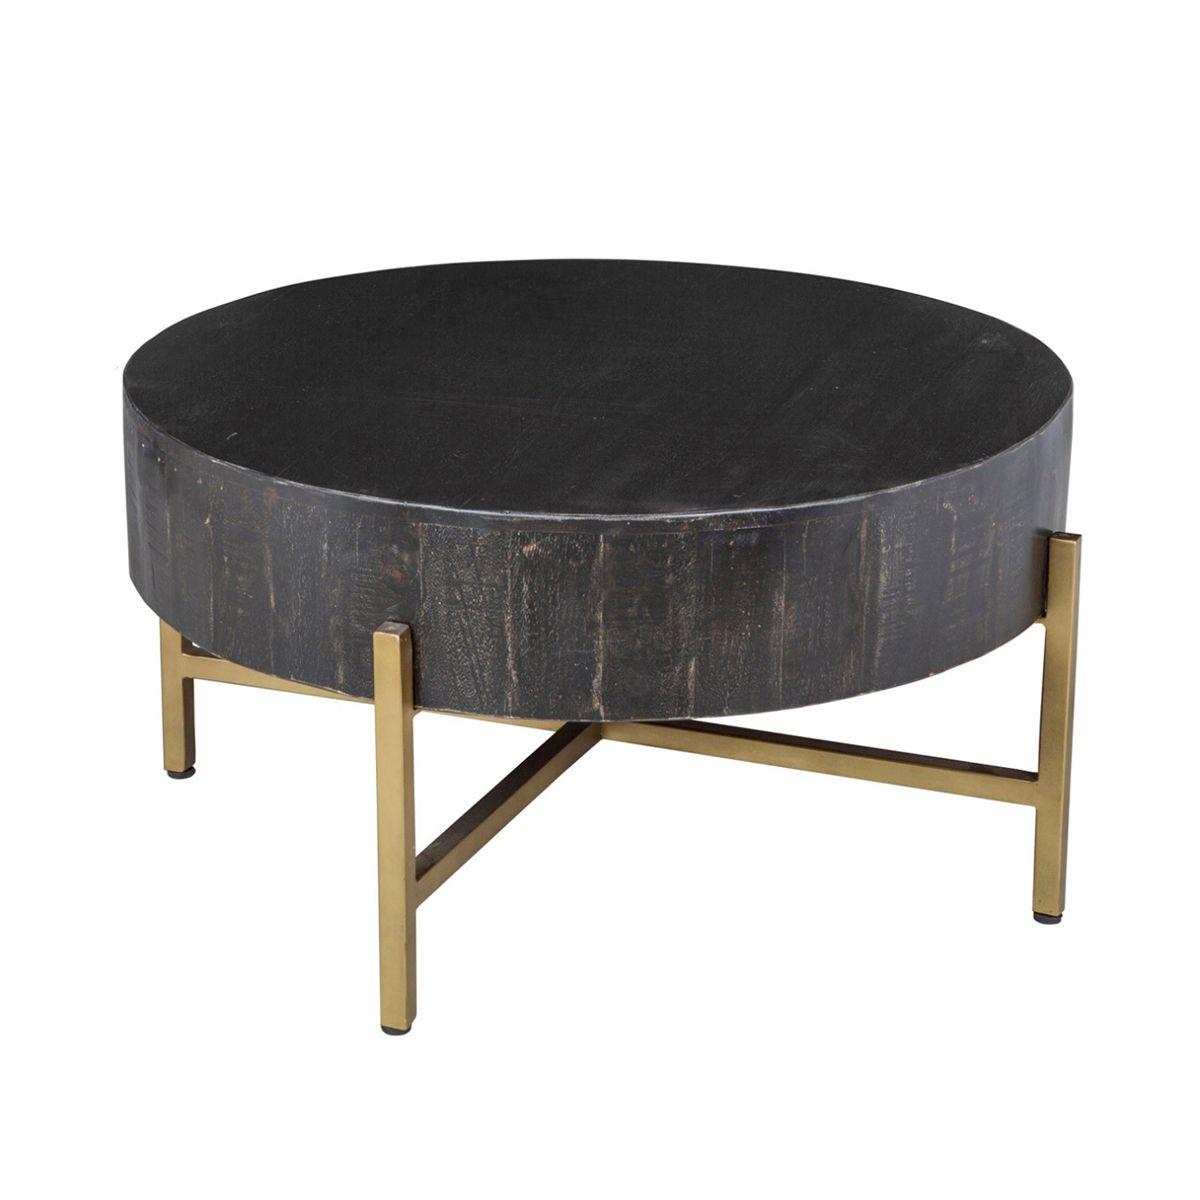 Black Distress Wood Round Coffee Table With Iron Base / Brass Finish.